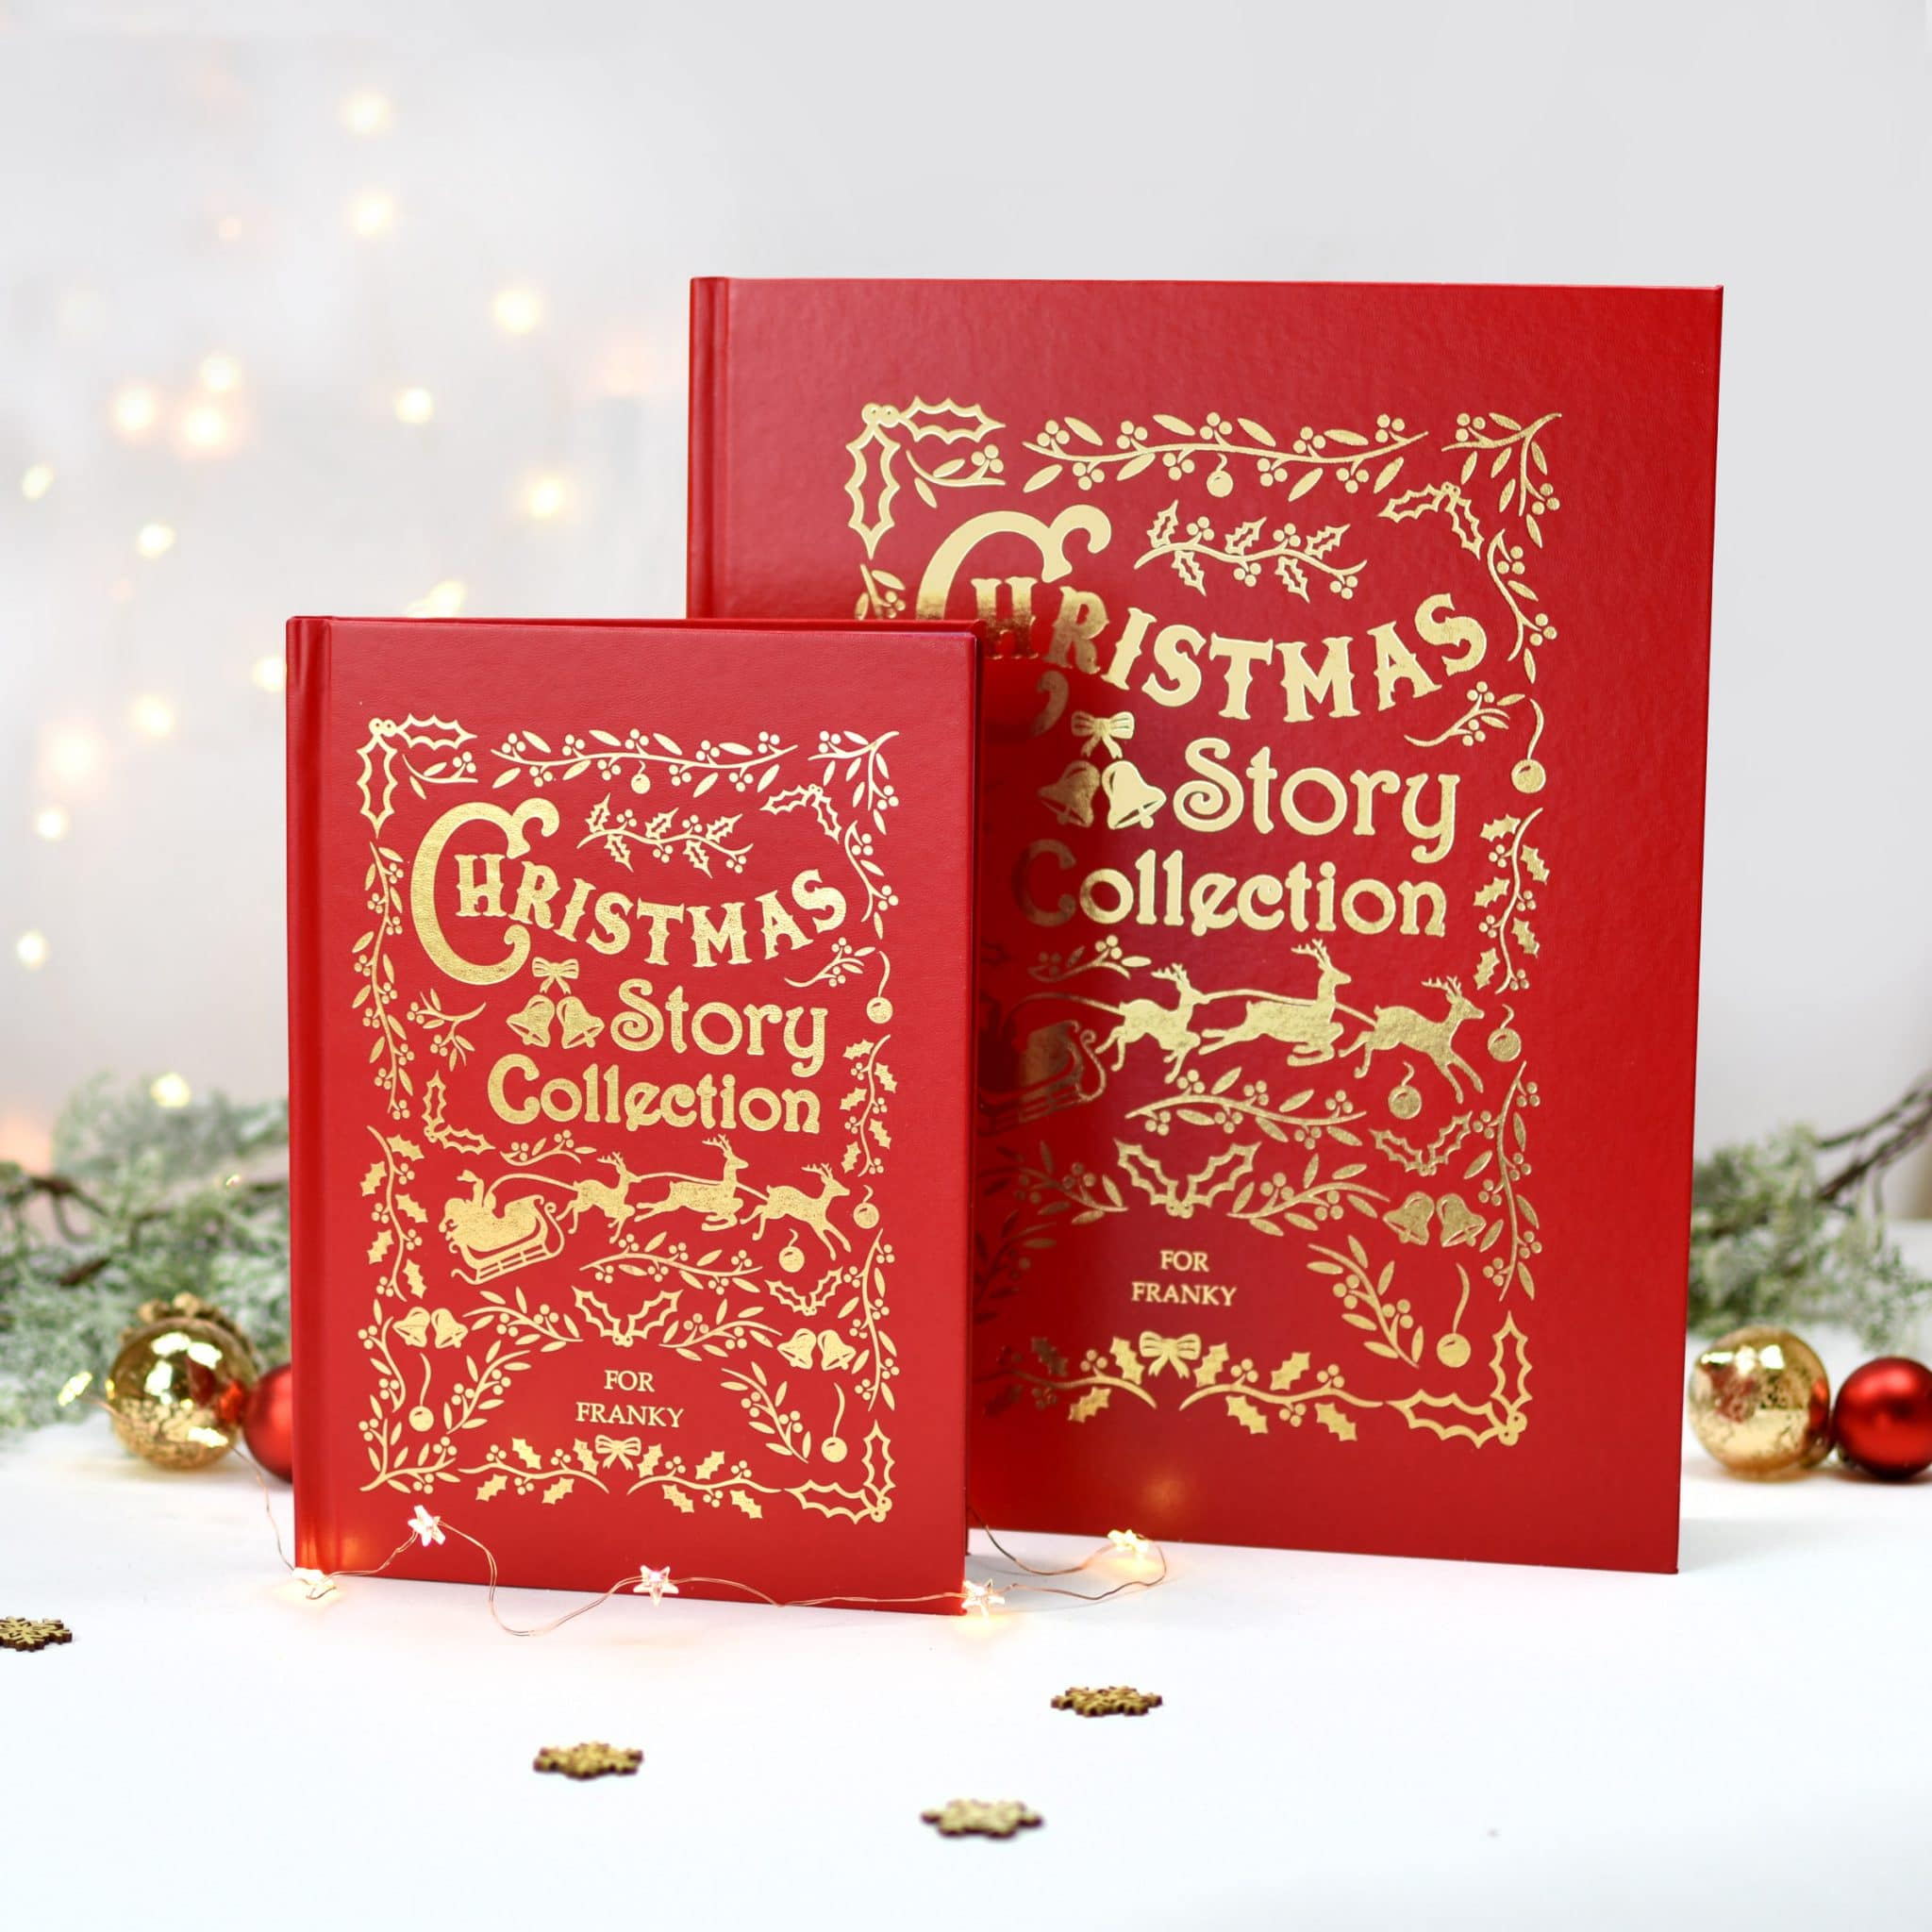 Unique Gifts Christmas: Personalized Christmas Story Collection